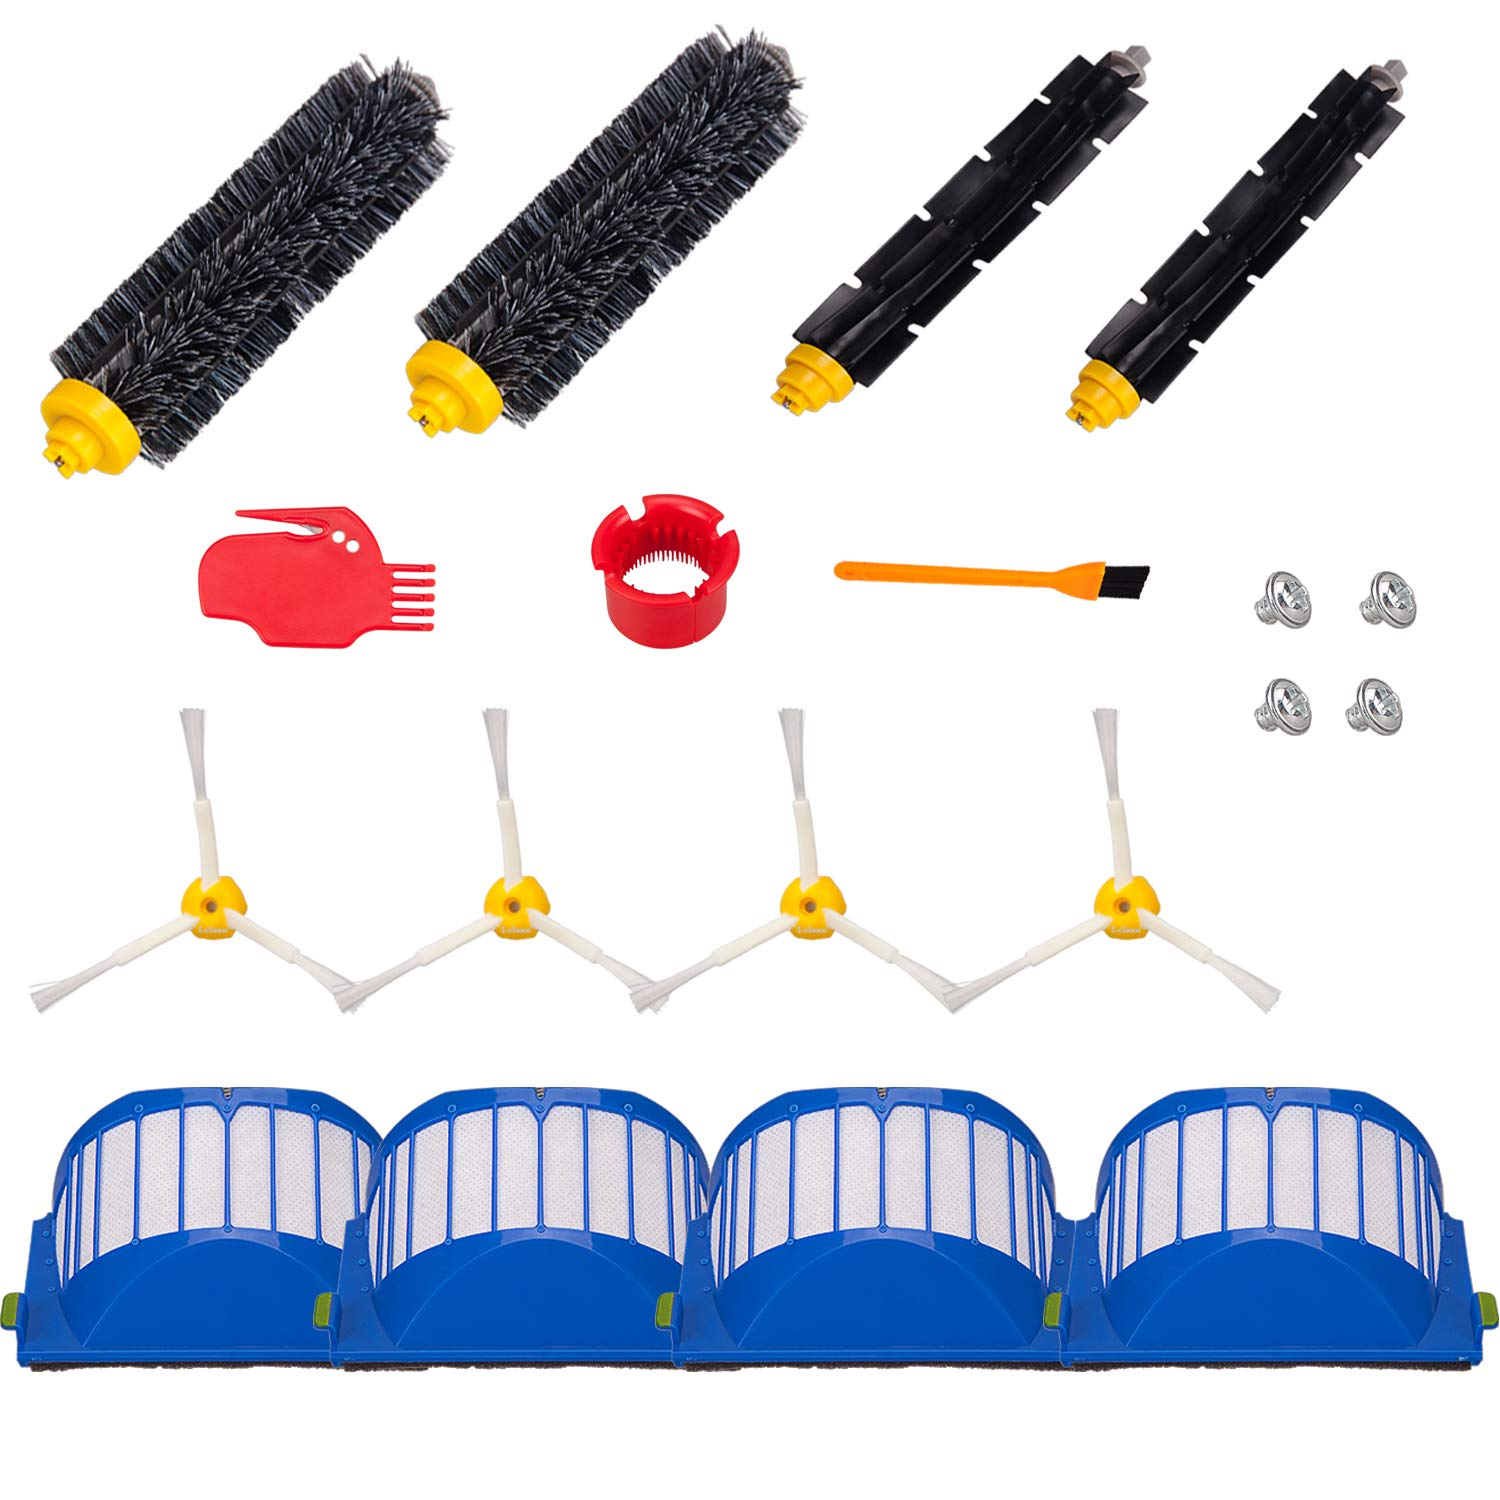 Hongfa Replacement Parts for iRobot Roomba 690,Replenishment Kit Compatible with Roomba 600 Series (690 650 680 675 660 651 700 780) Filter,Side Brush,Bristle Brush and Flexible Brush